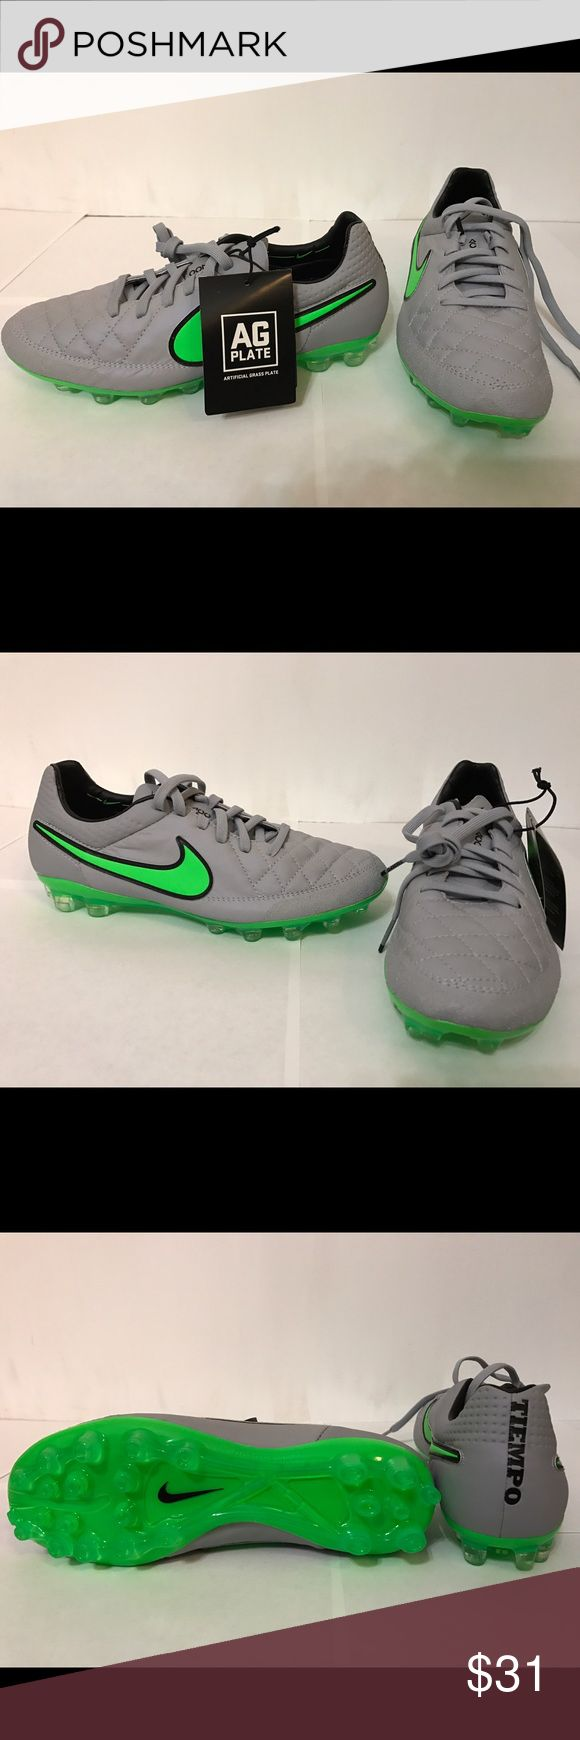 NIKE Soccer Cleats NIKE TIEMPO LEGEND V, Kids Soccer Cleats. Size 6. Color Wolf Gray/ Green/Black. Authentic Nike Tiempo Legend V soccer cleats with HyperShield and ACC technology for the lightest touch. Made for use on artificial turf or grass. Nike Shoes Sneakers